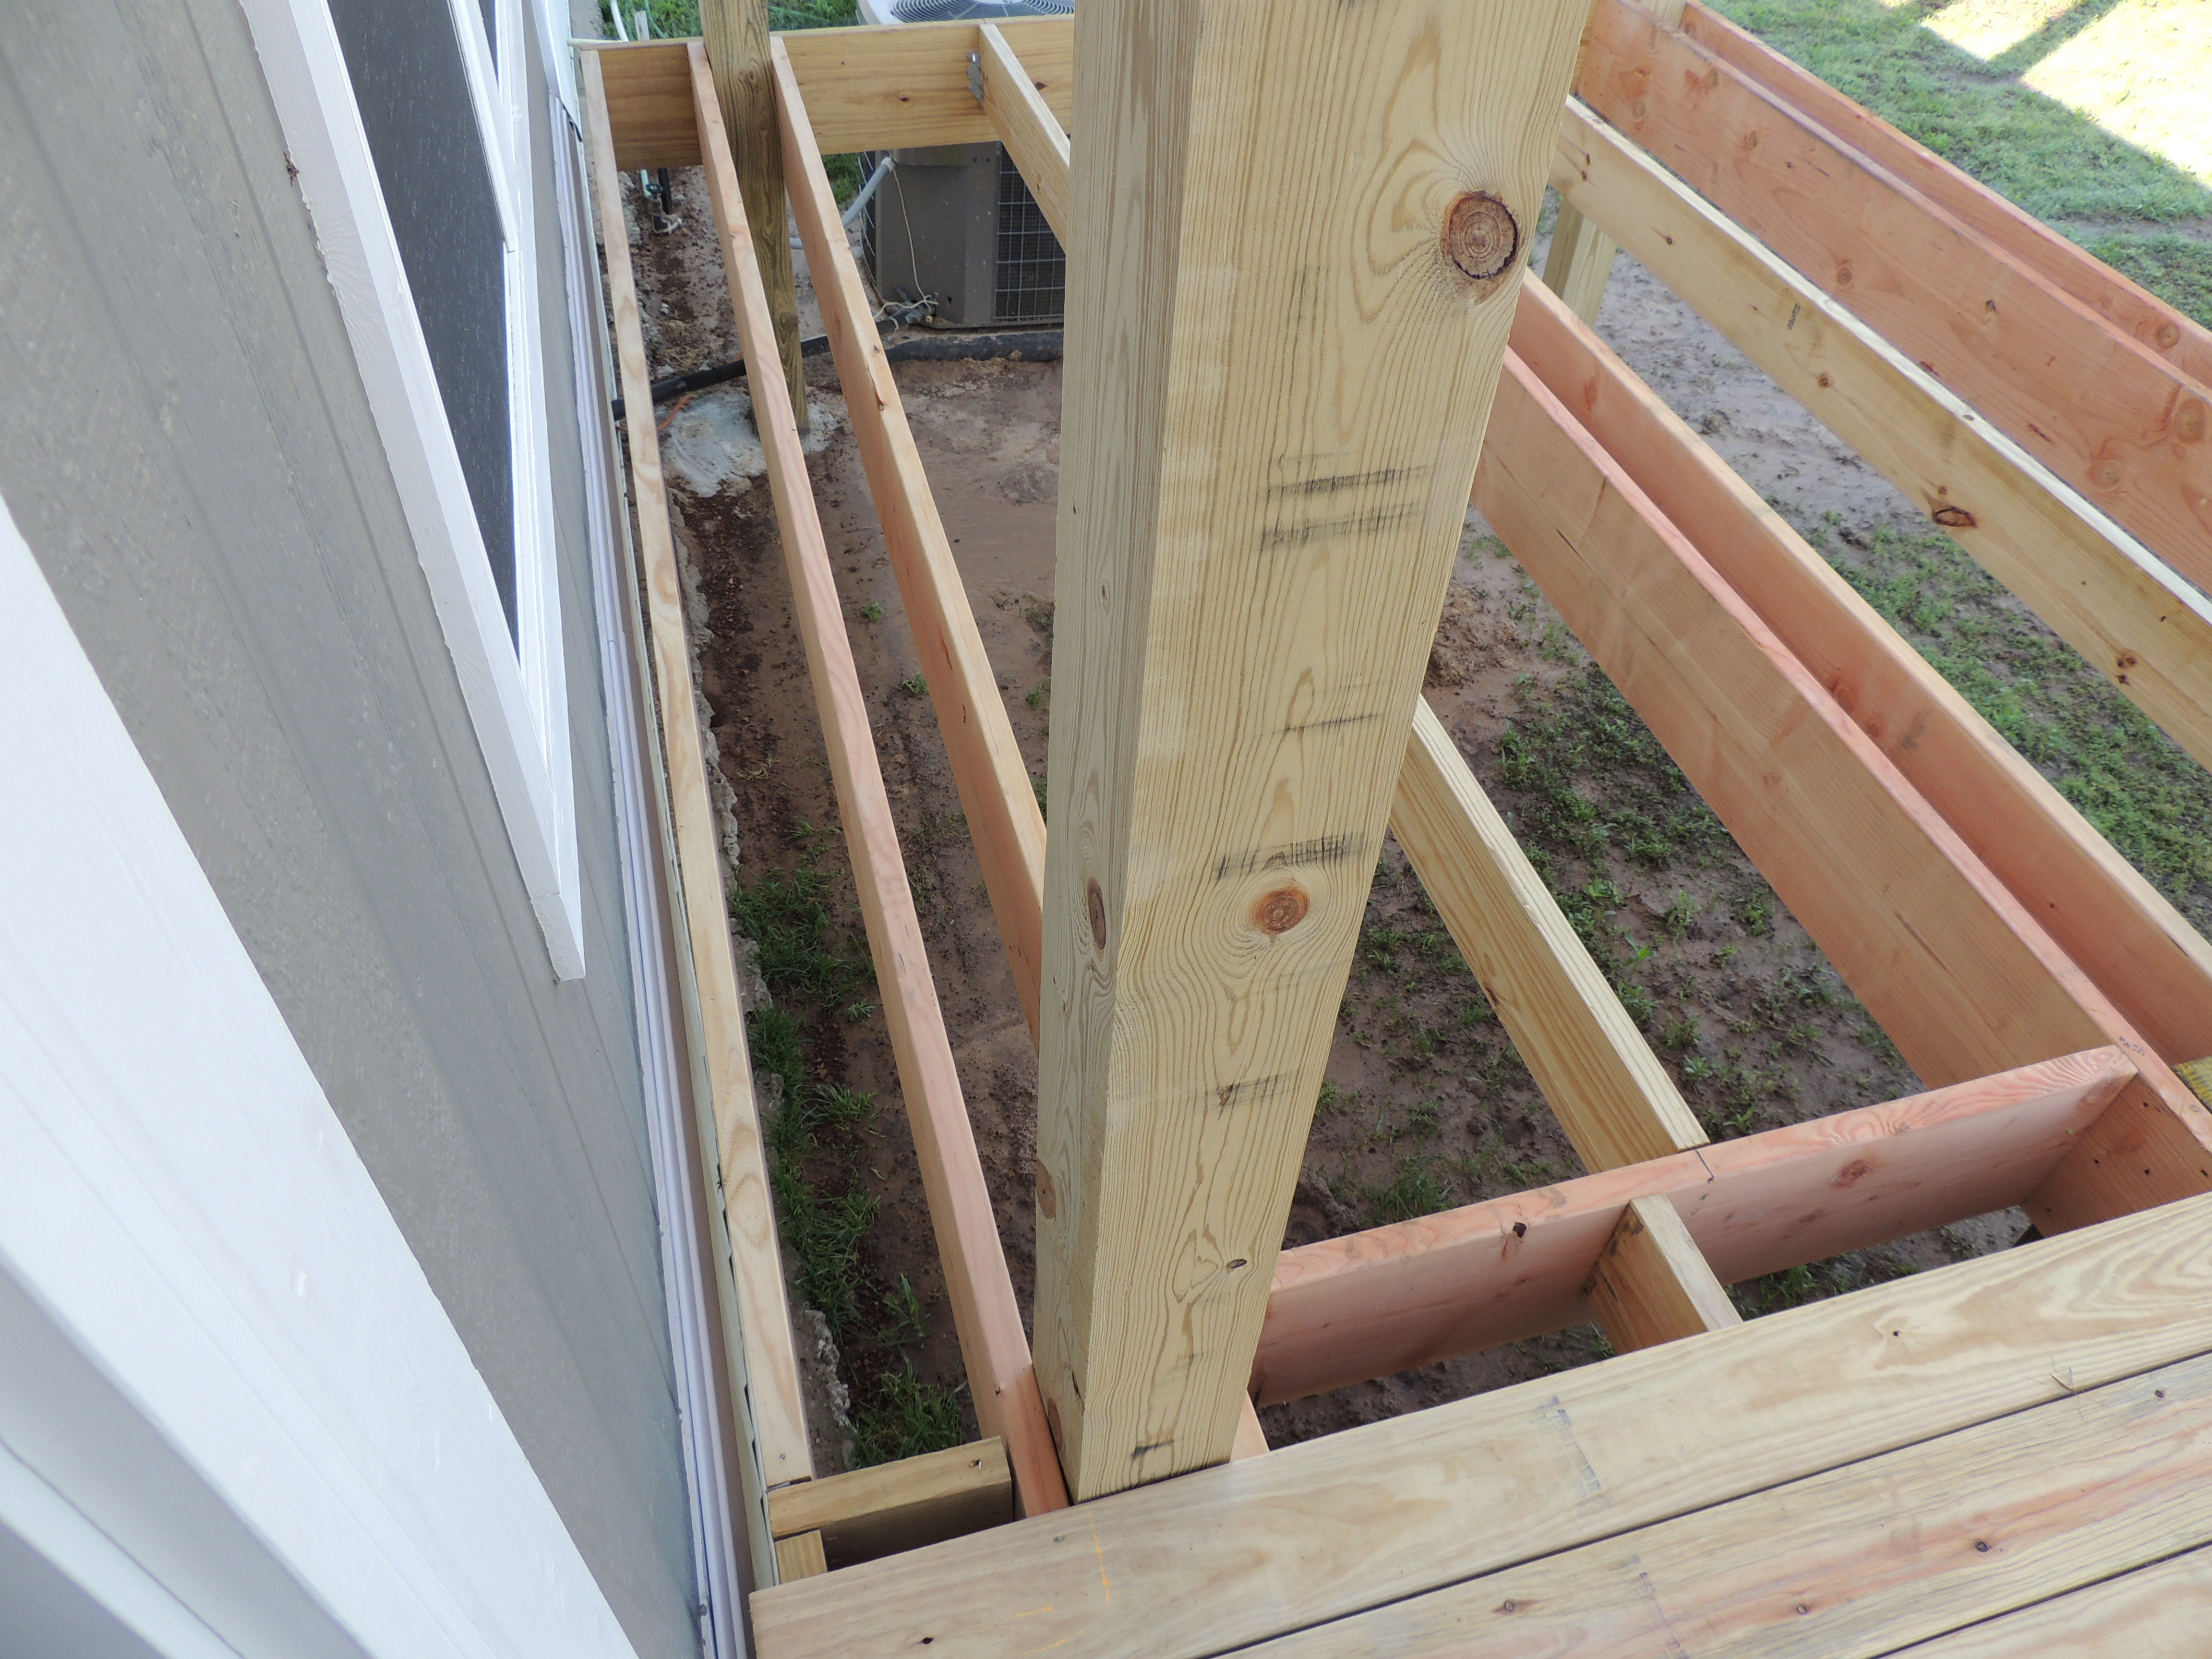 How To Build A Deck Or Porch With A Roof Part 2 Roses